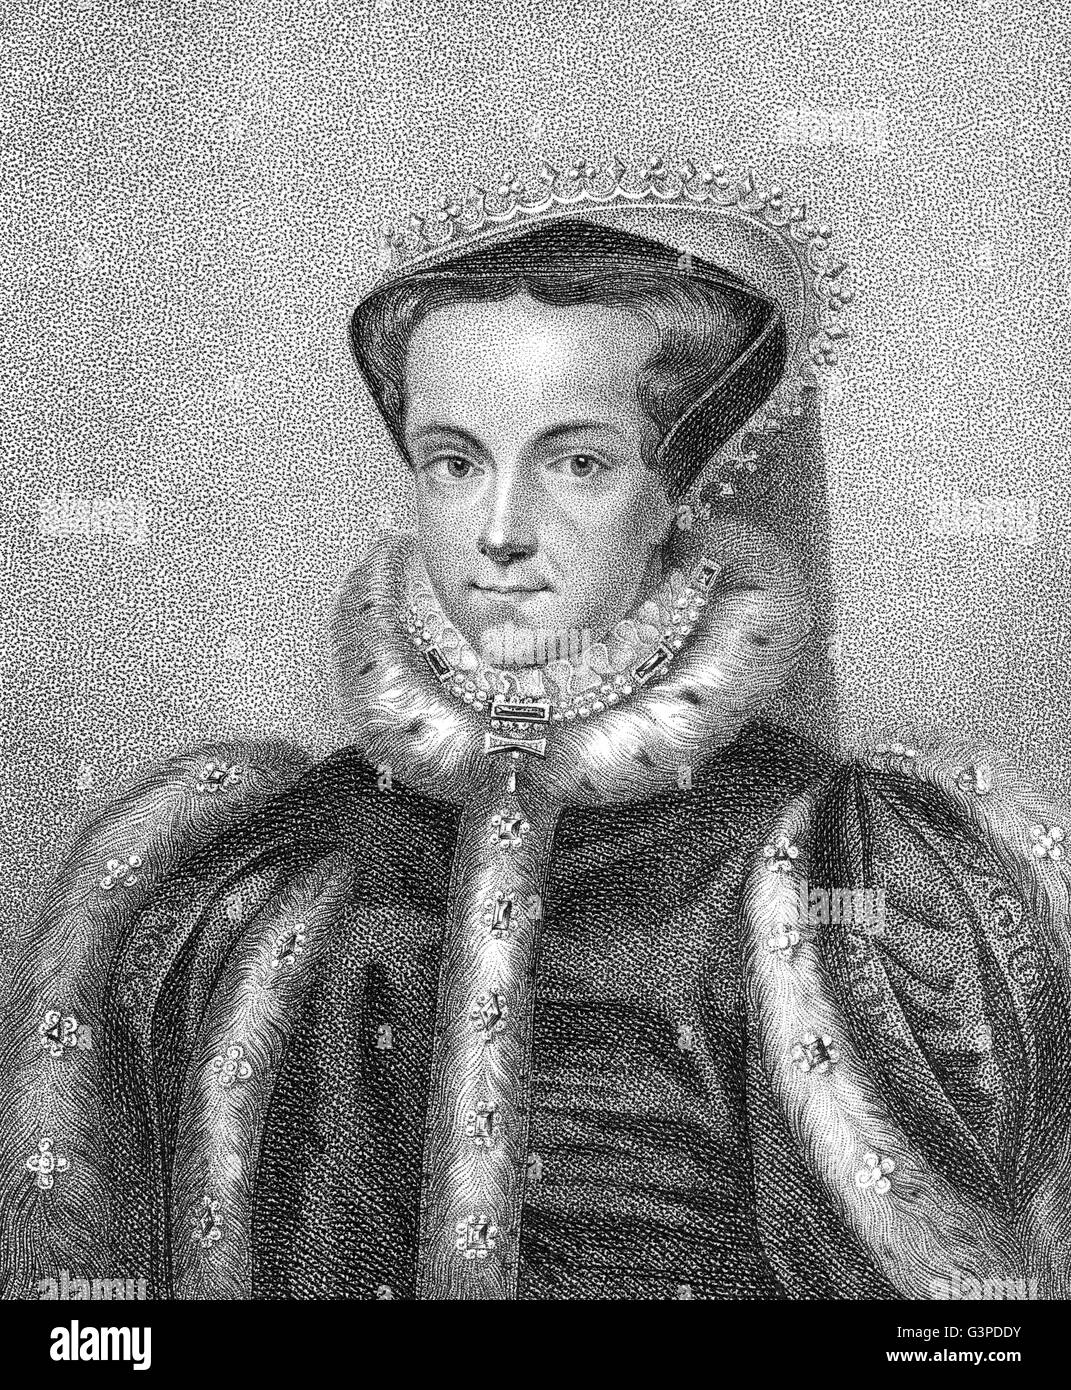 Mary I or Bloody Mary, 1516 - 1558, Queen of England and Ireland from 1553 until 1558, Maria I. Tudor - Stock Image